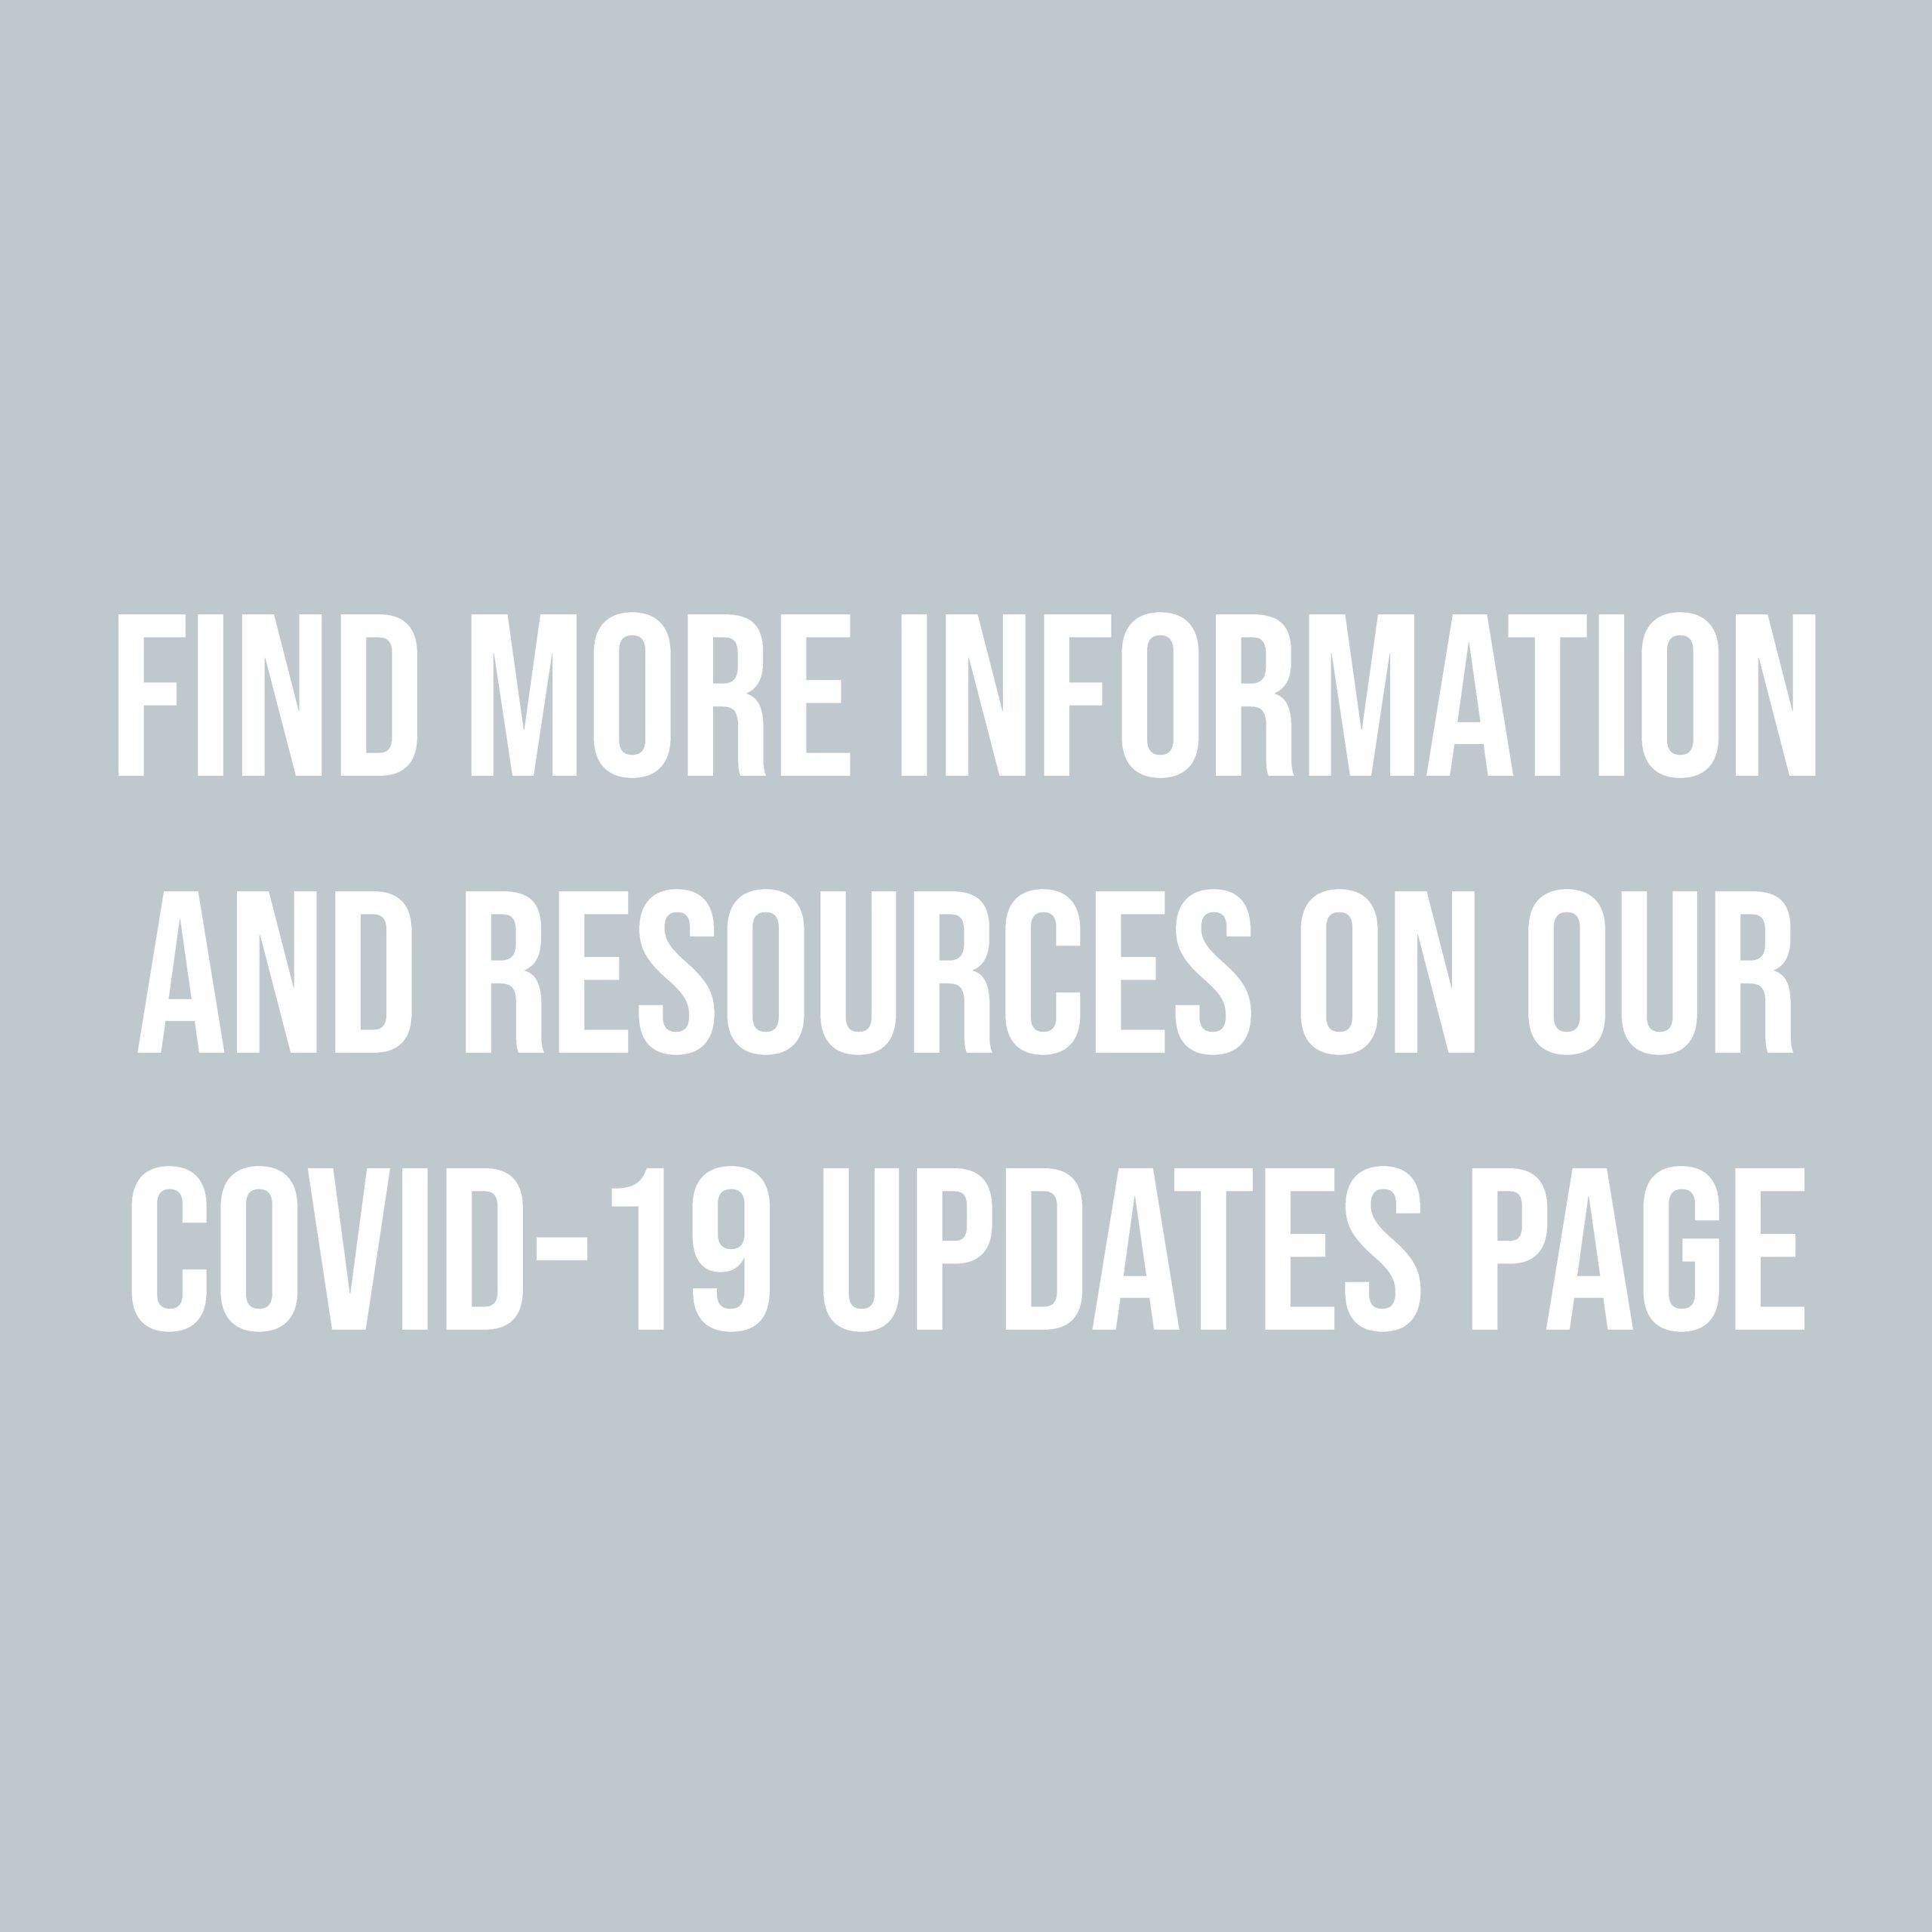 Find more information and resources on our COVID-19 updates page.